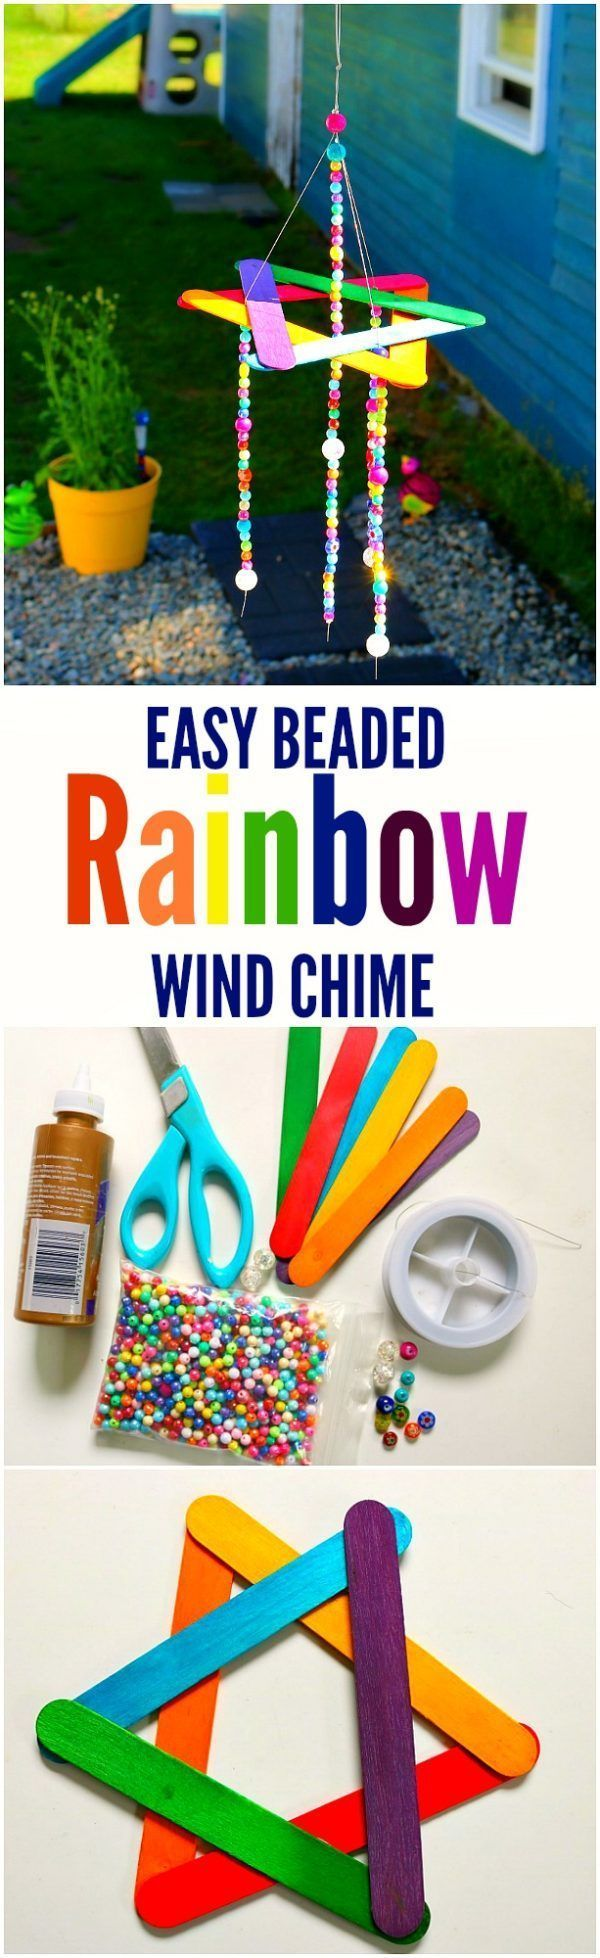 Wind Chime Kids Craft Diy Crafts For Kids Easy Wind Chimes Kids